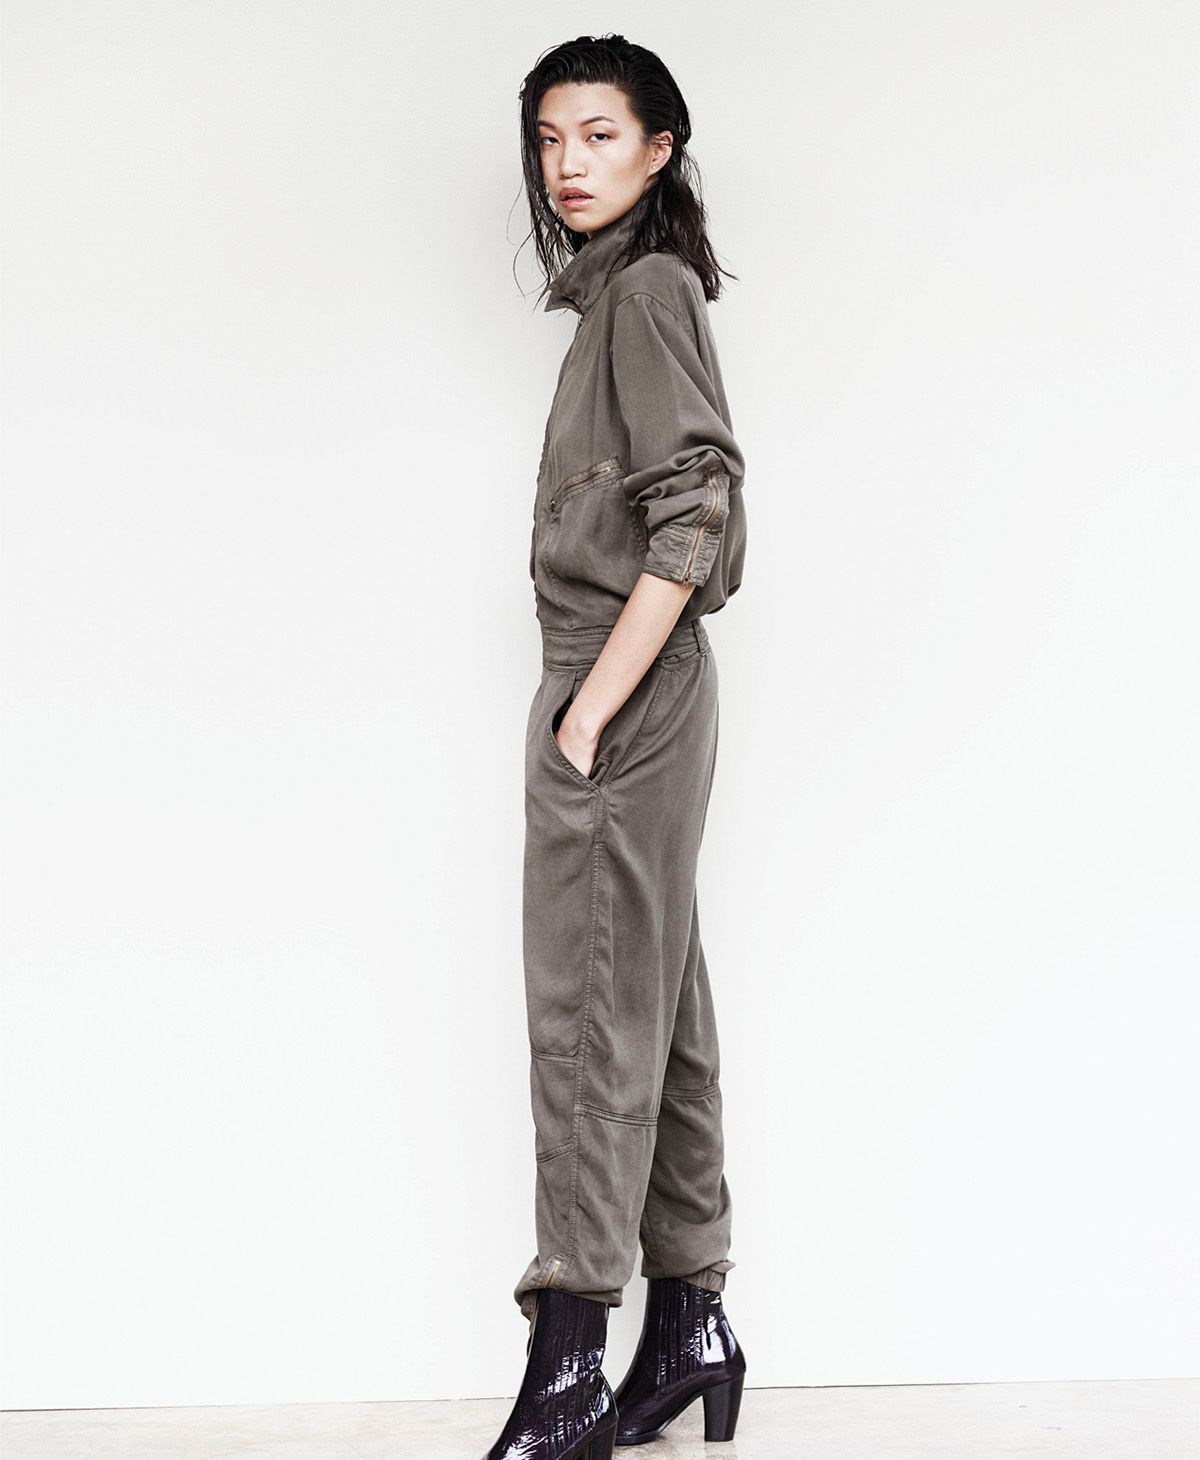 paola airforce jump suit